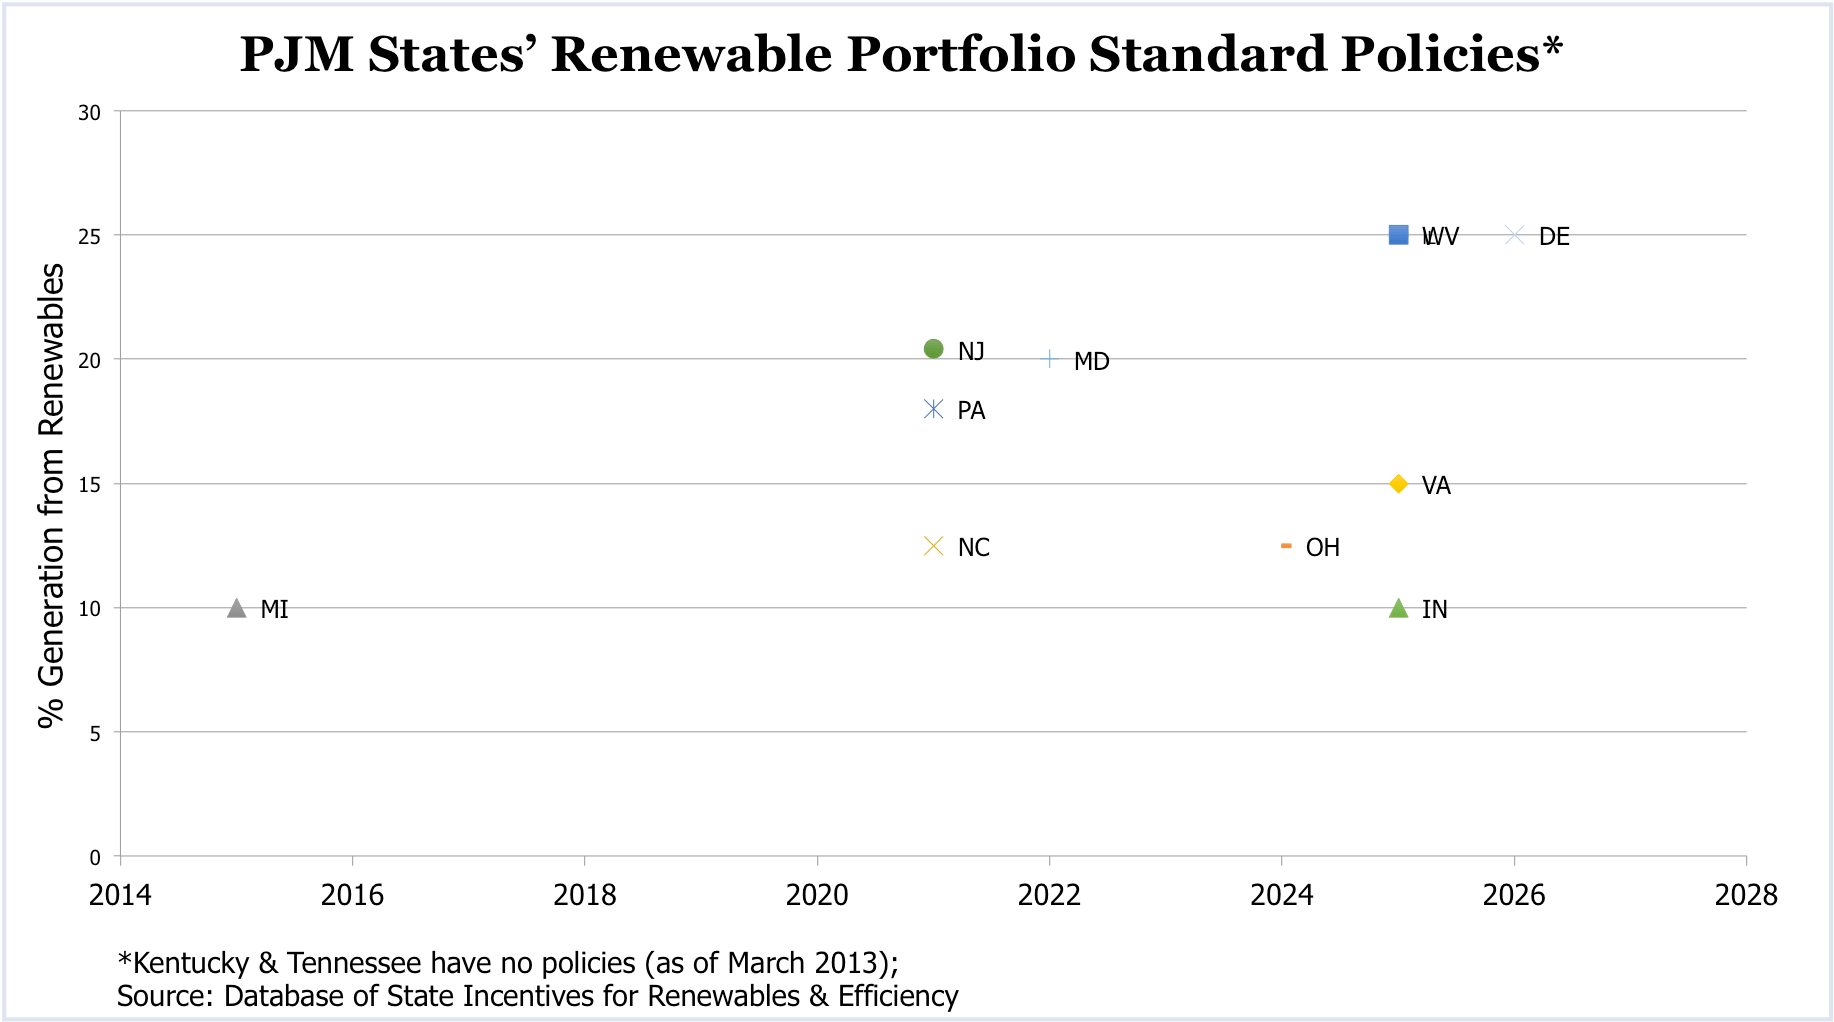 Epa Carbon Rule Falls Unevenly On Pjm States